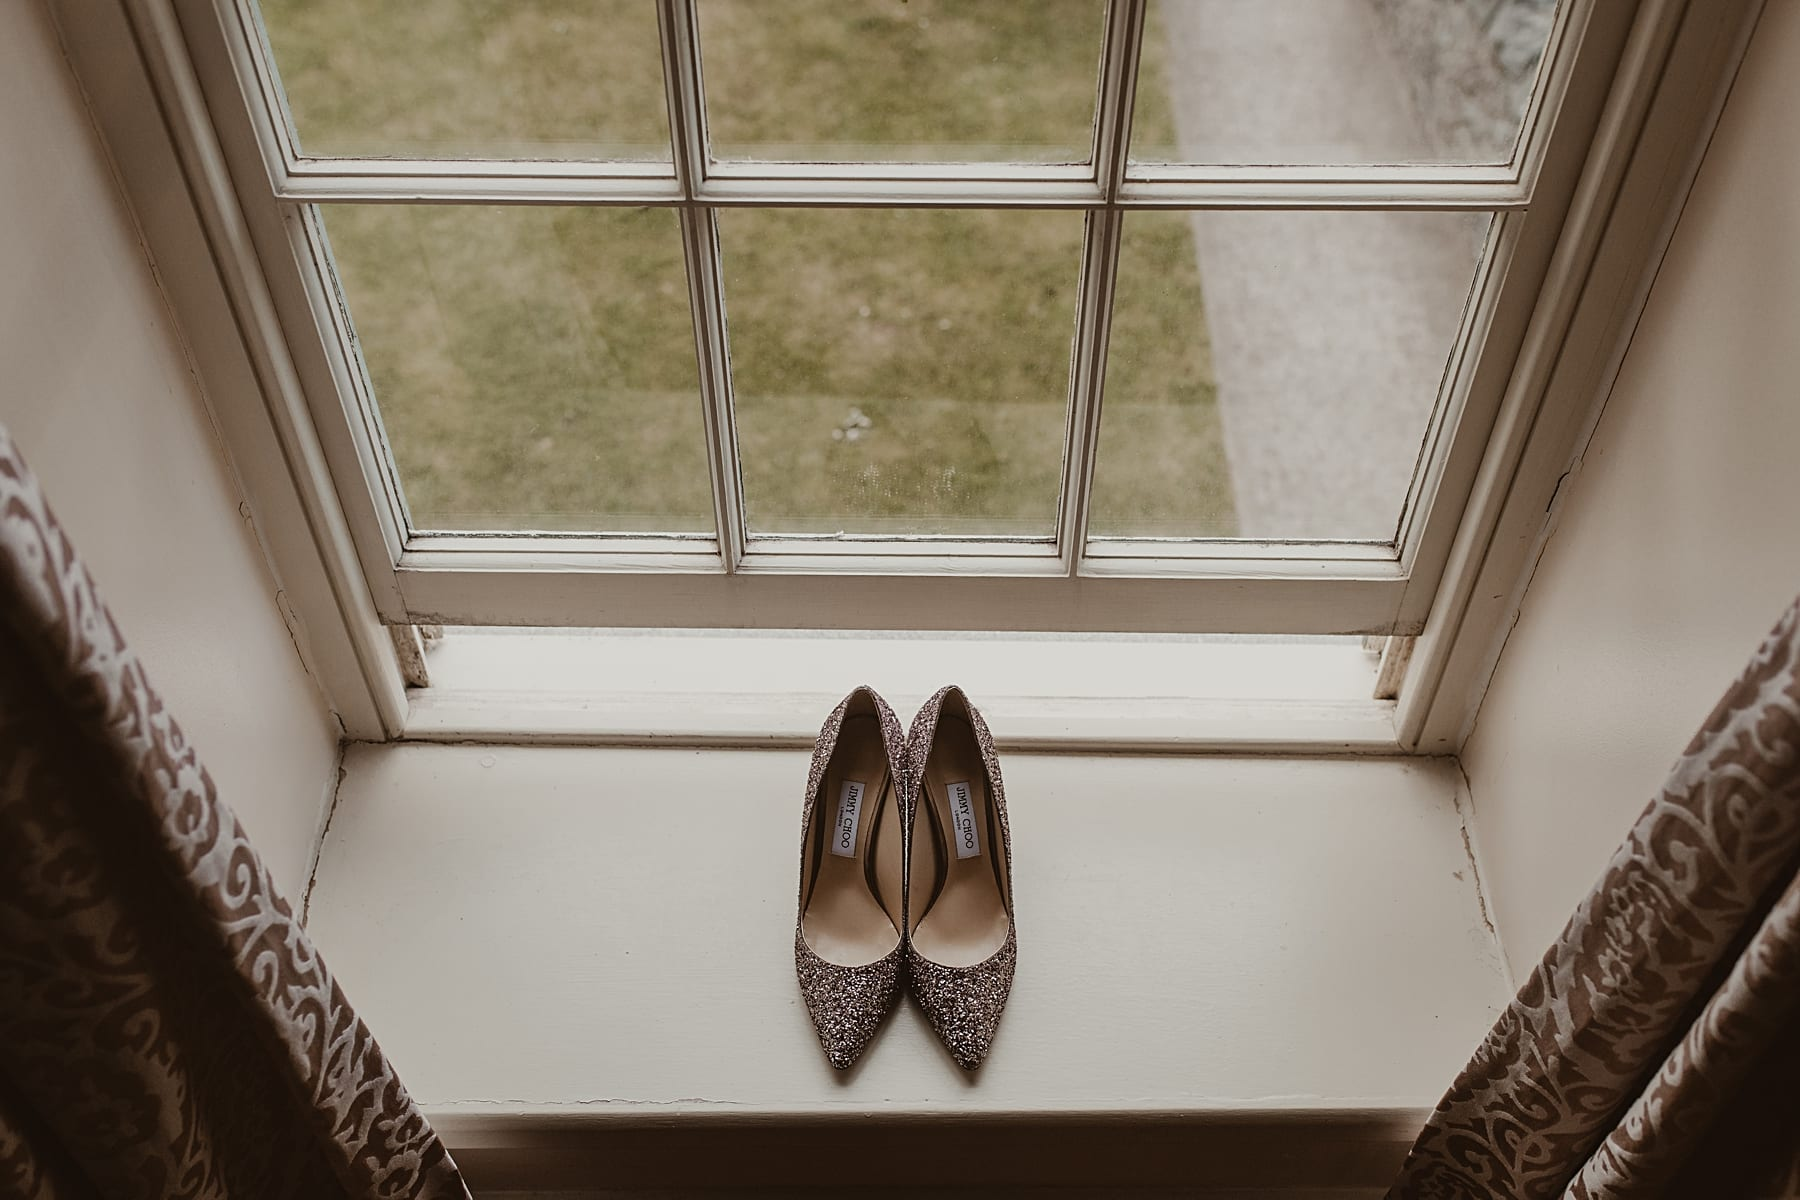 Jimmy Choo Shoes on window